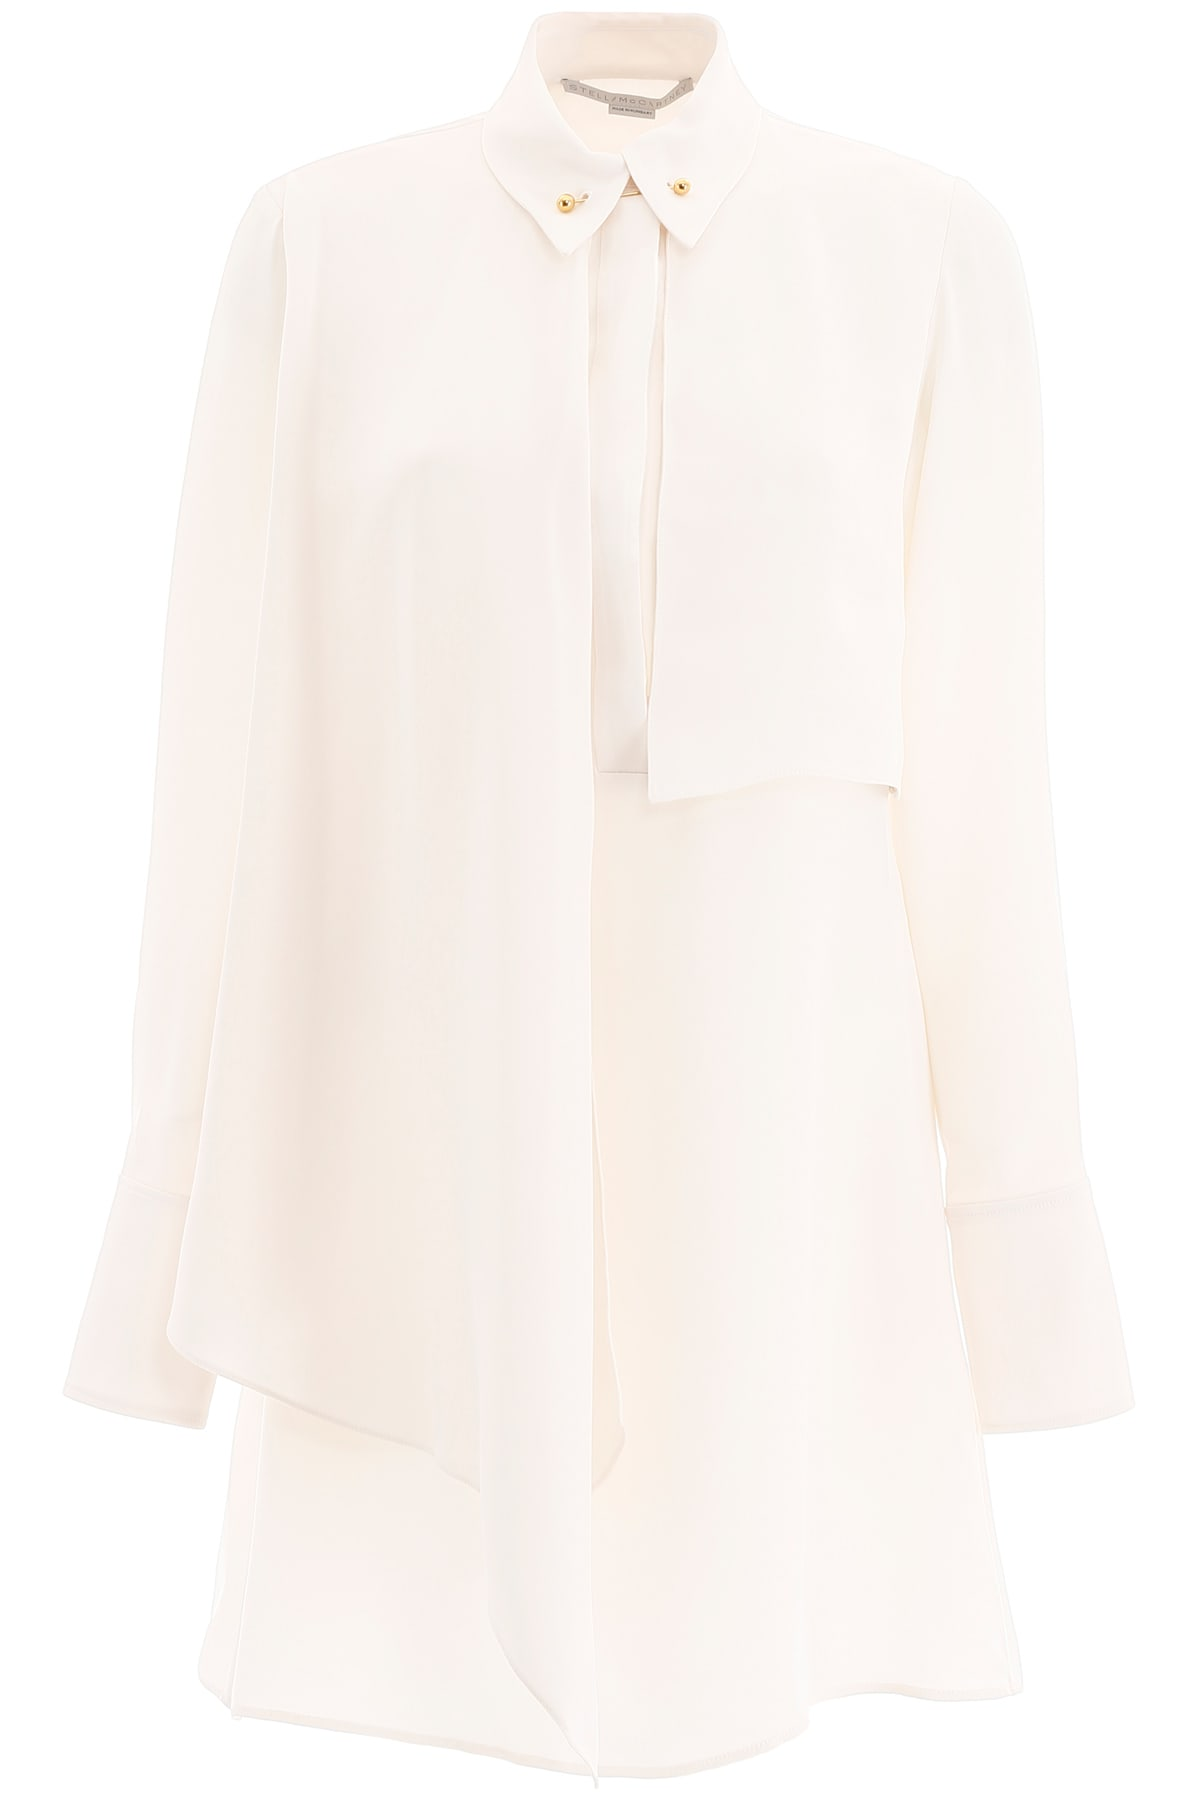 Stella McCartney Mini Shirt Dress